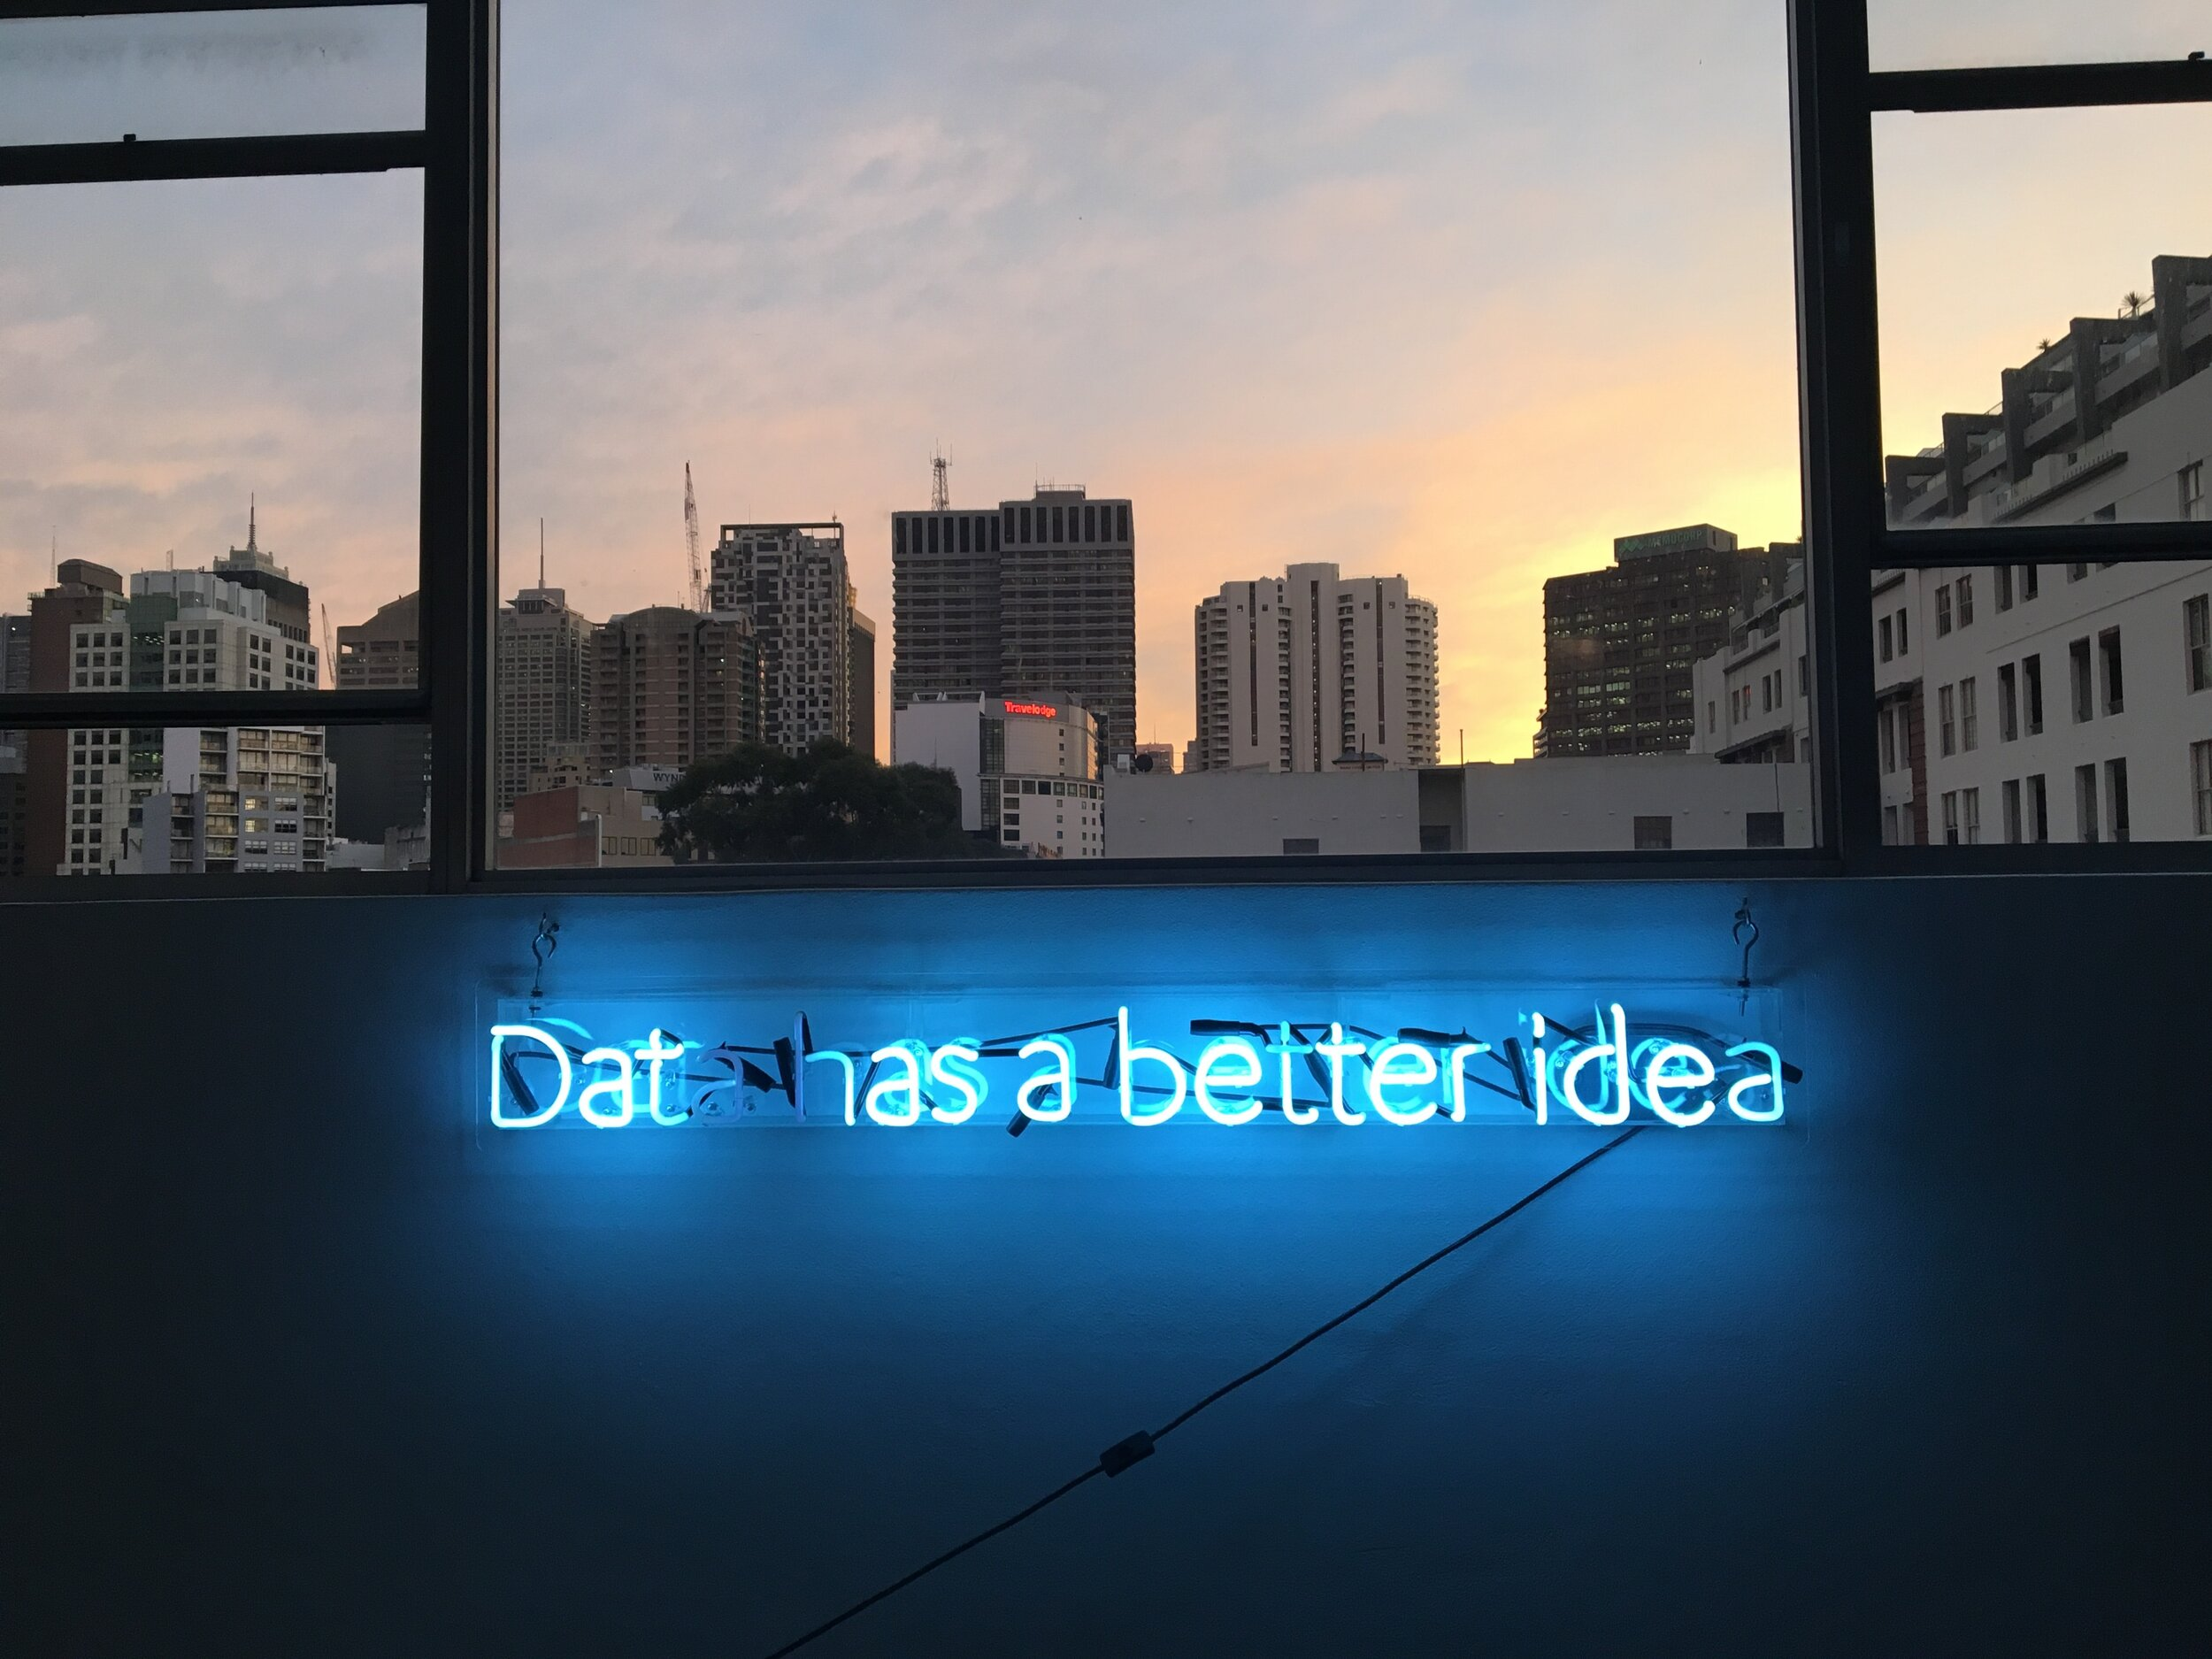 Data has a better idea for small business owners